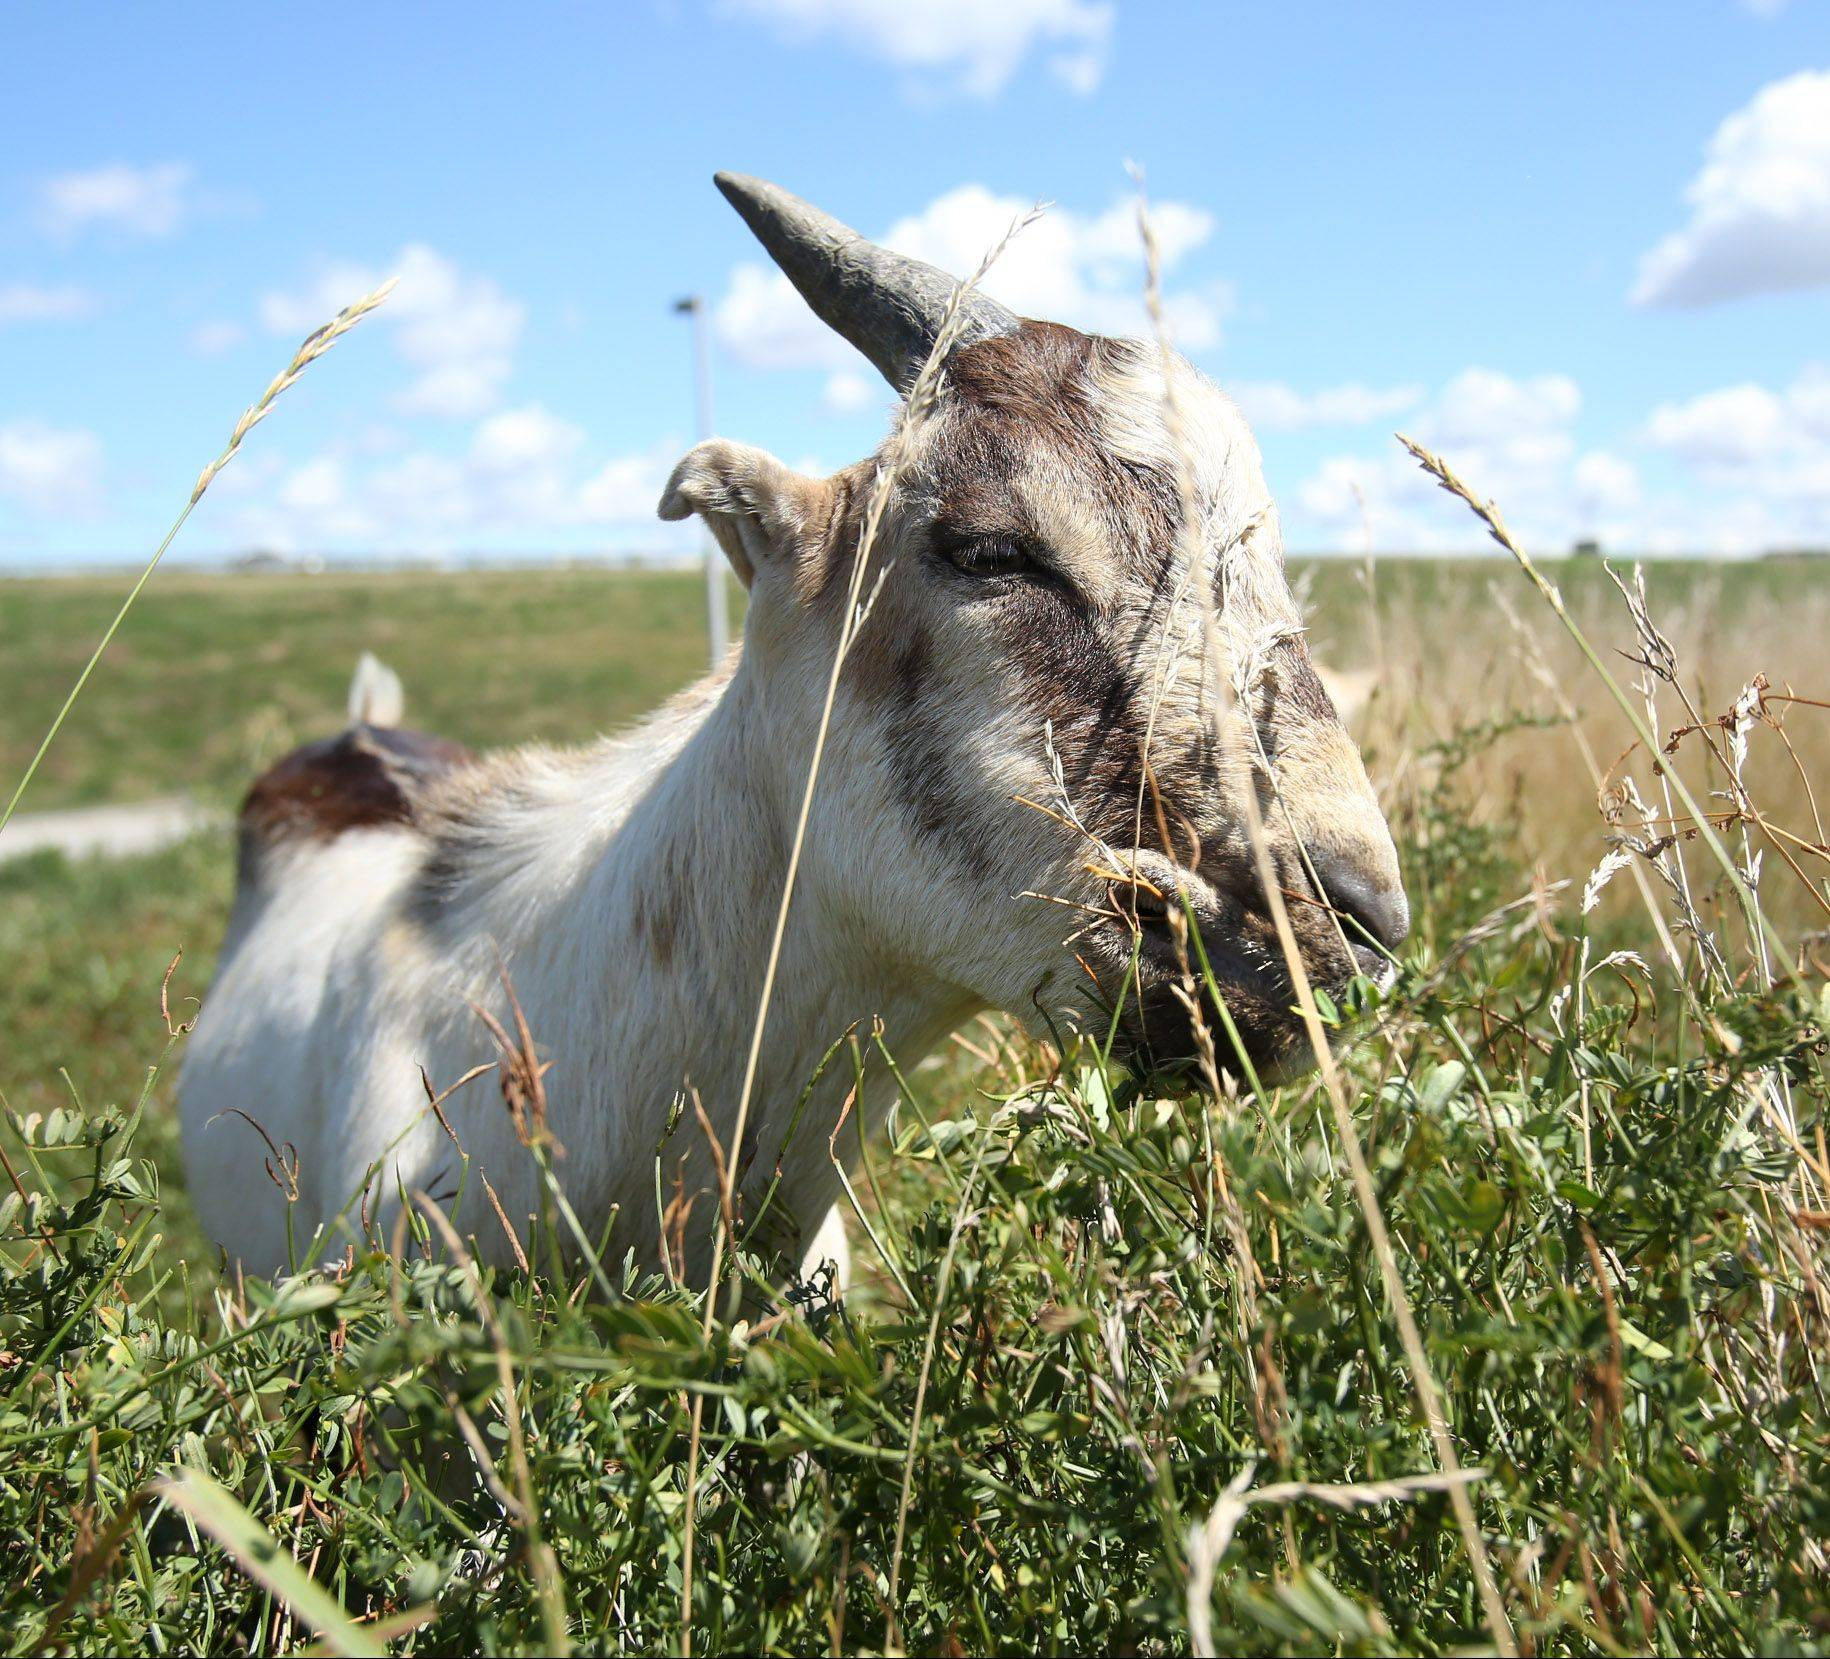 A goat grazes on grass at the northeast corner of O'Hare International Airport in Chicago on Tuesday.